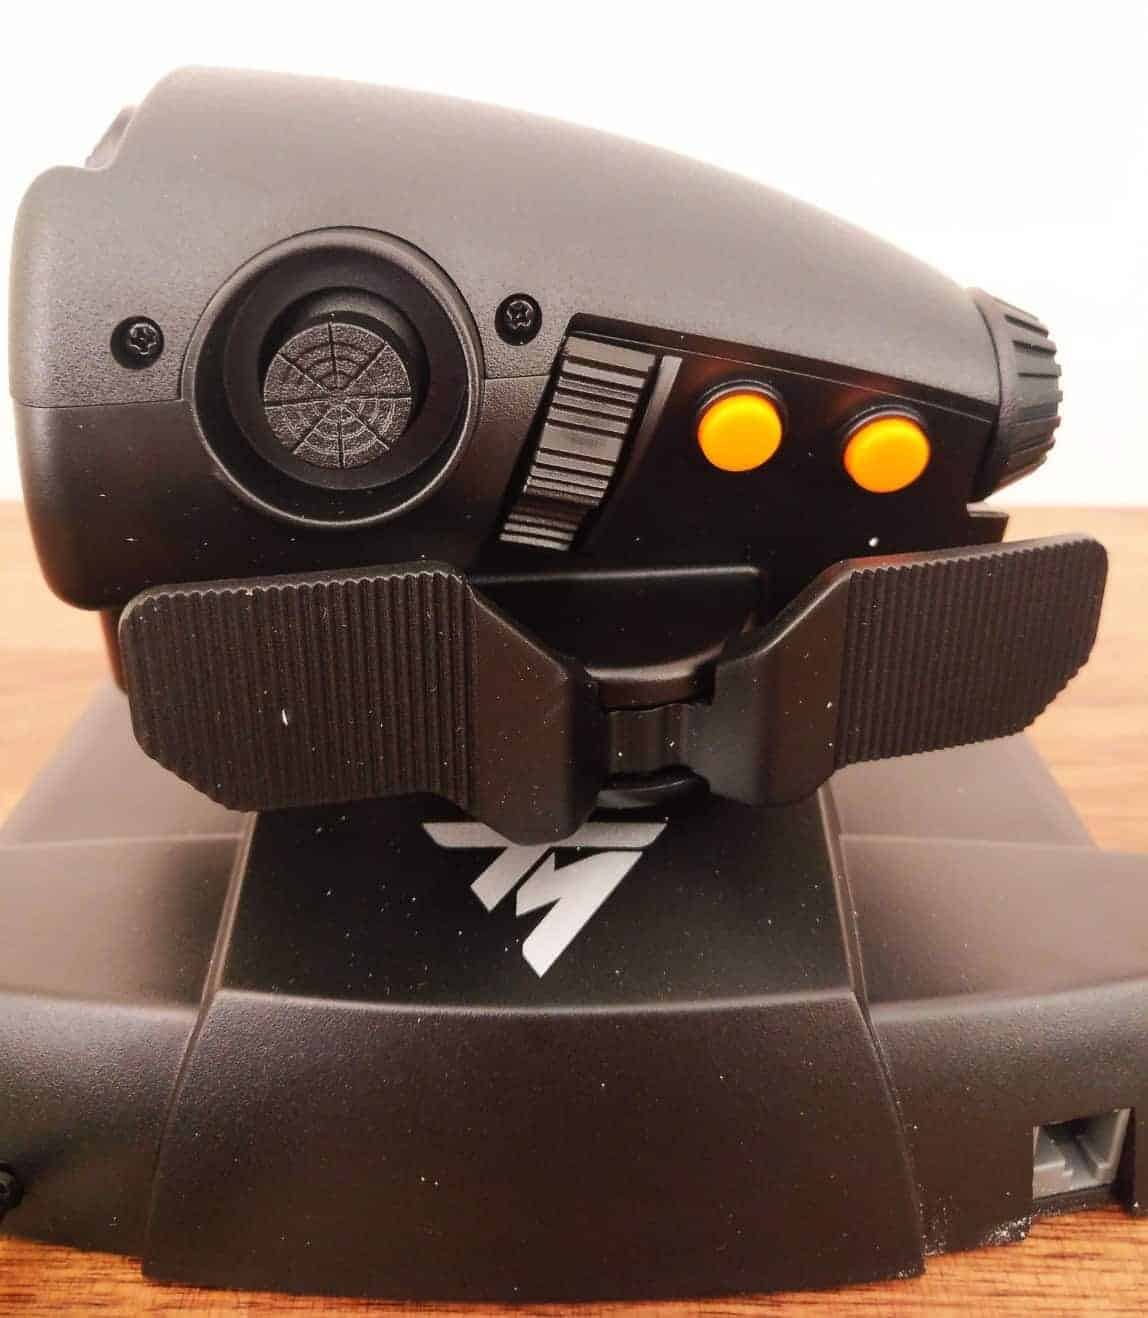 Thrustmaster-Flightstick-Photos13 Thrustmaster T.16000M FCS Hotas Joystick Review